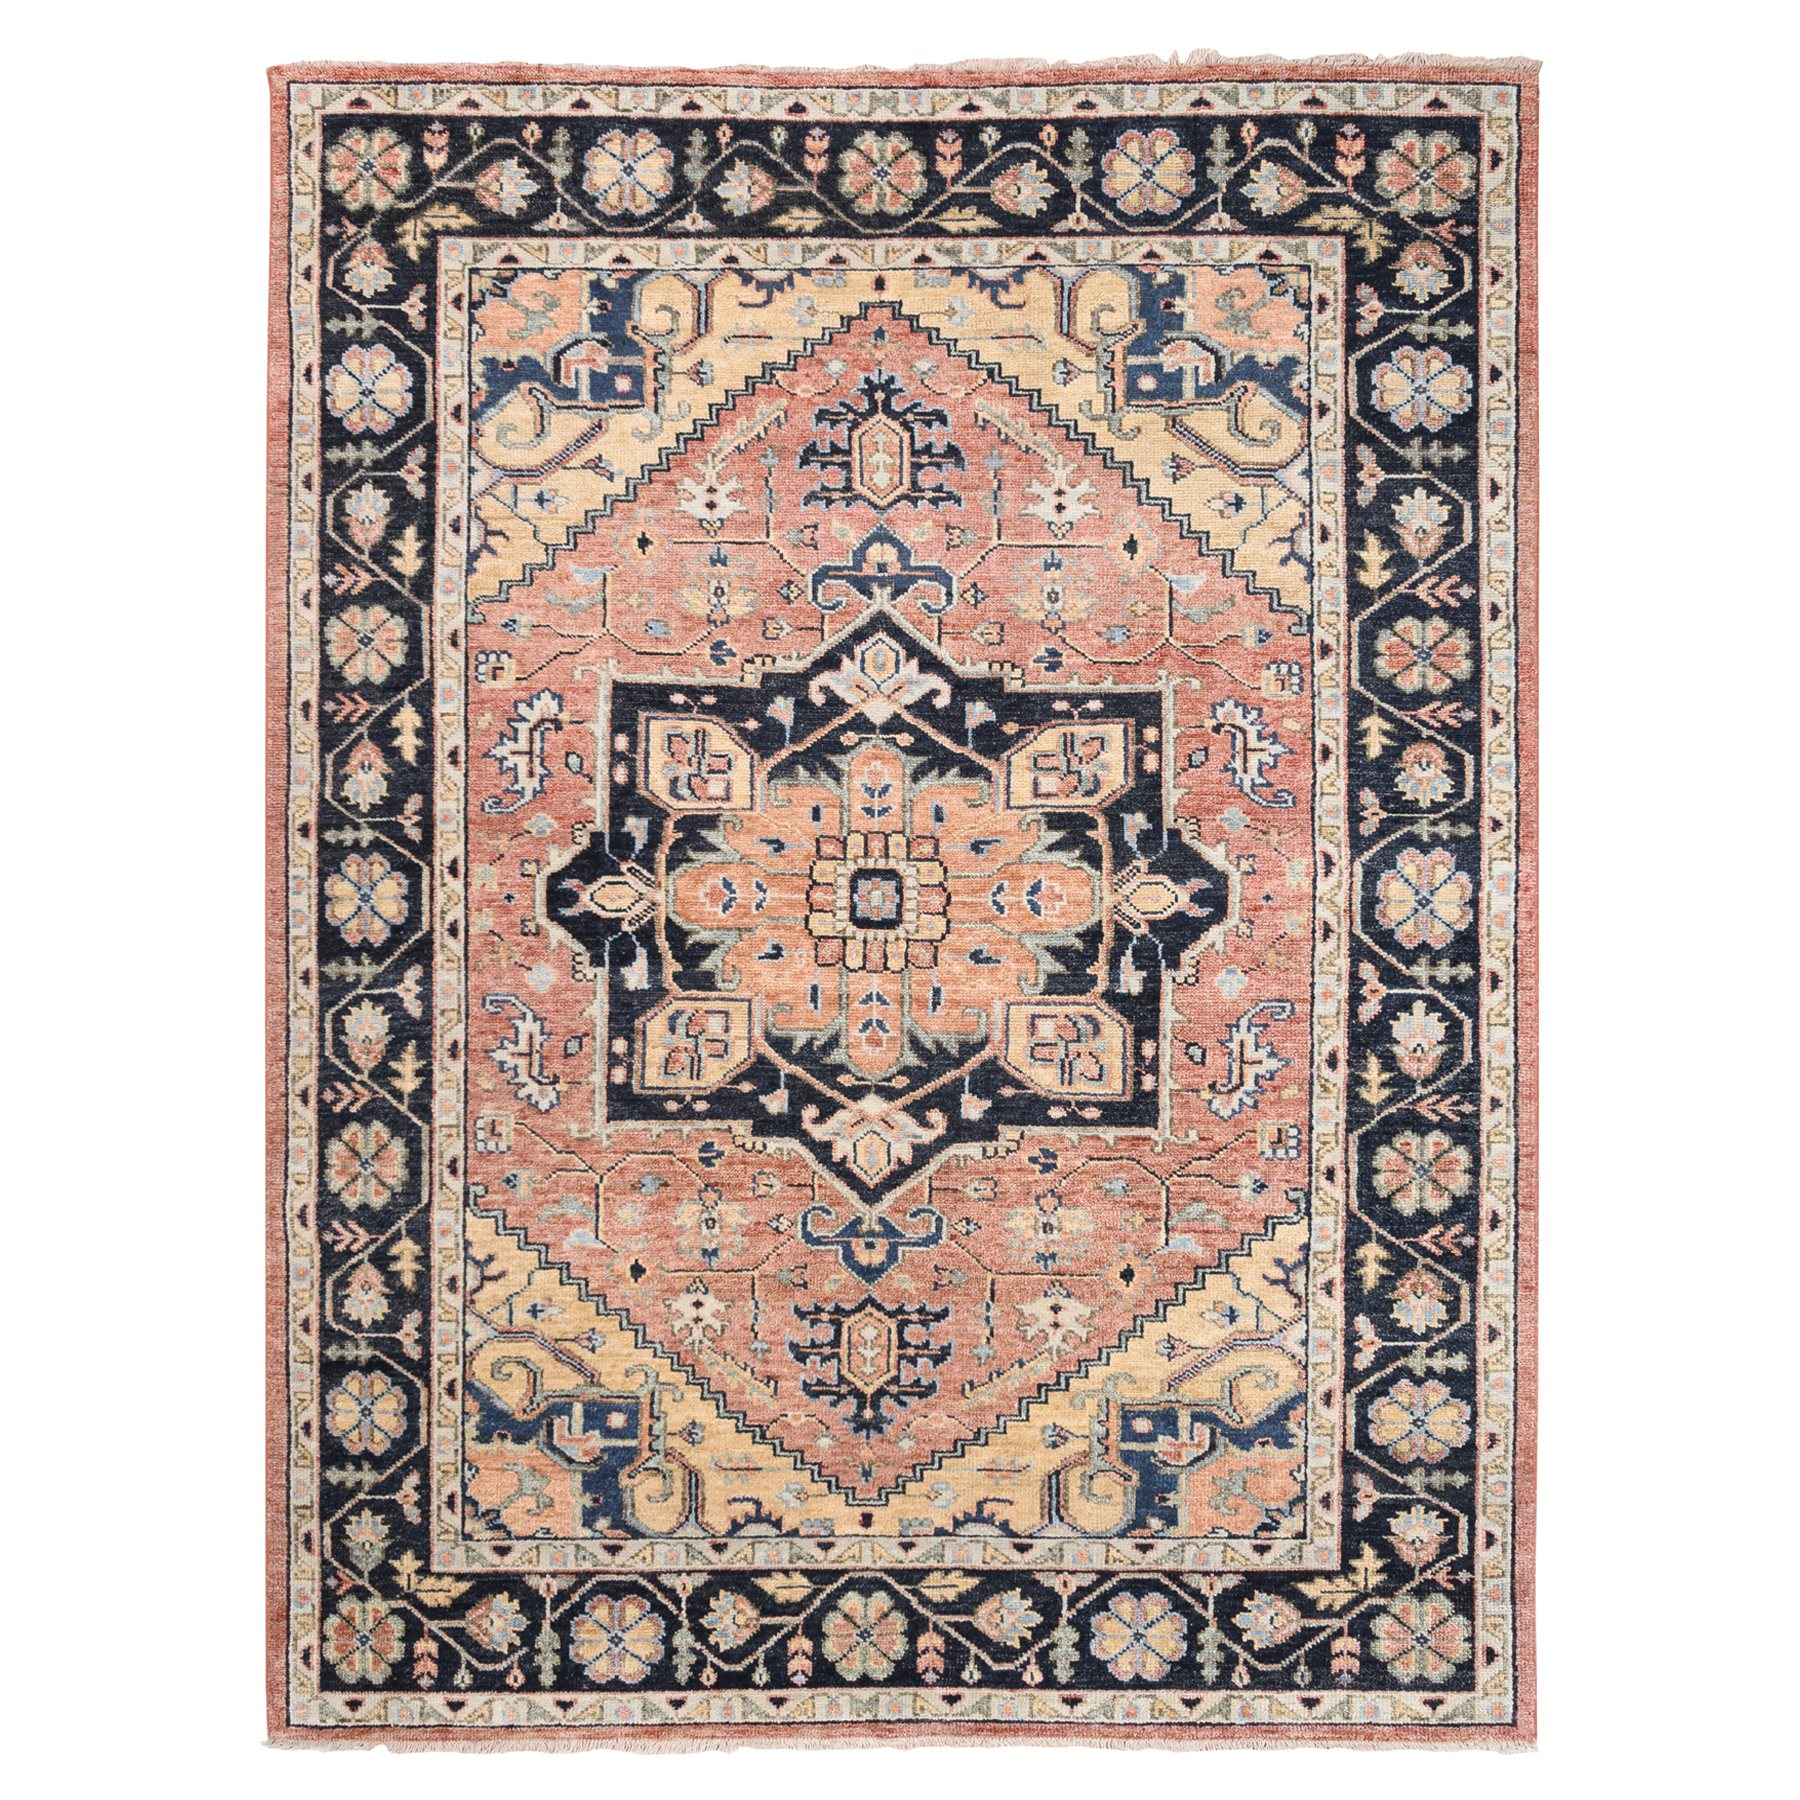 Tribal & Geometric Rugs LUV559944